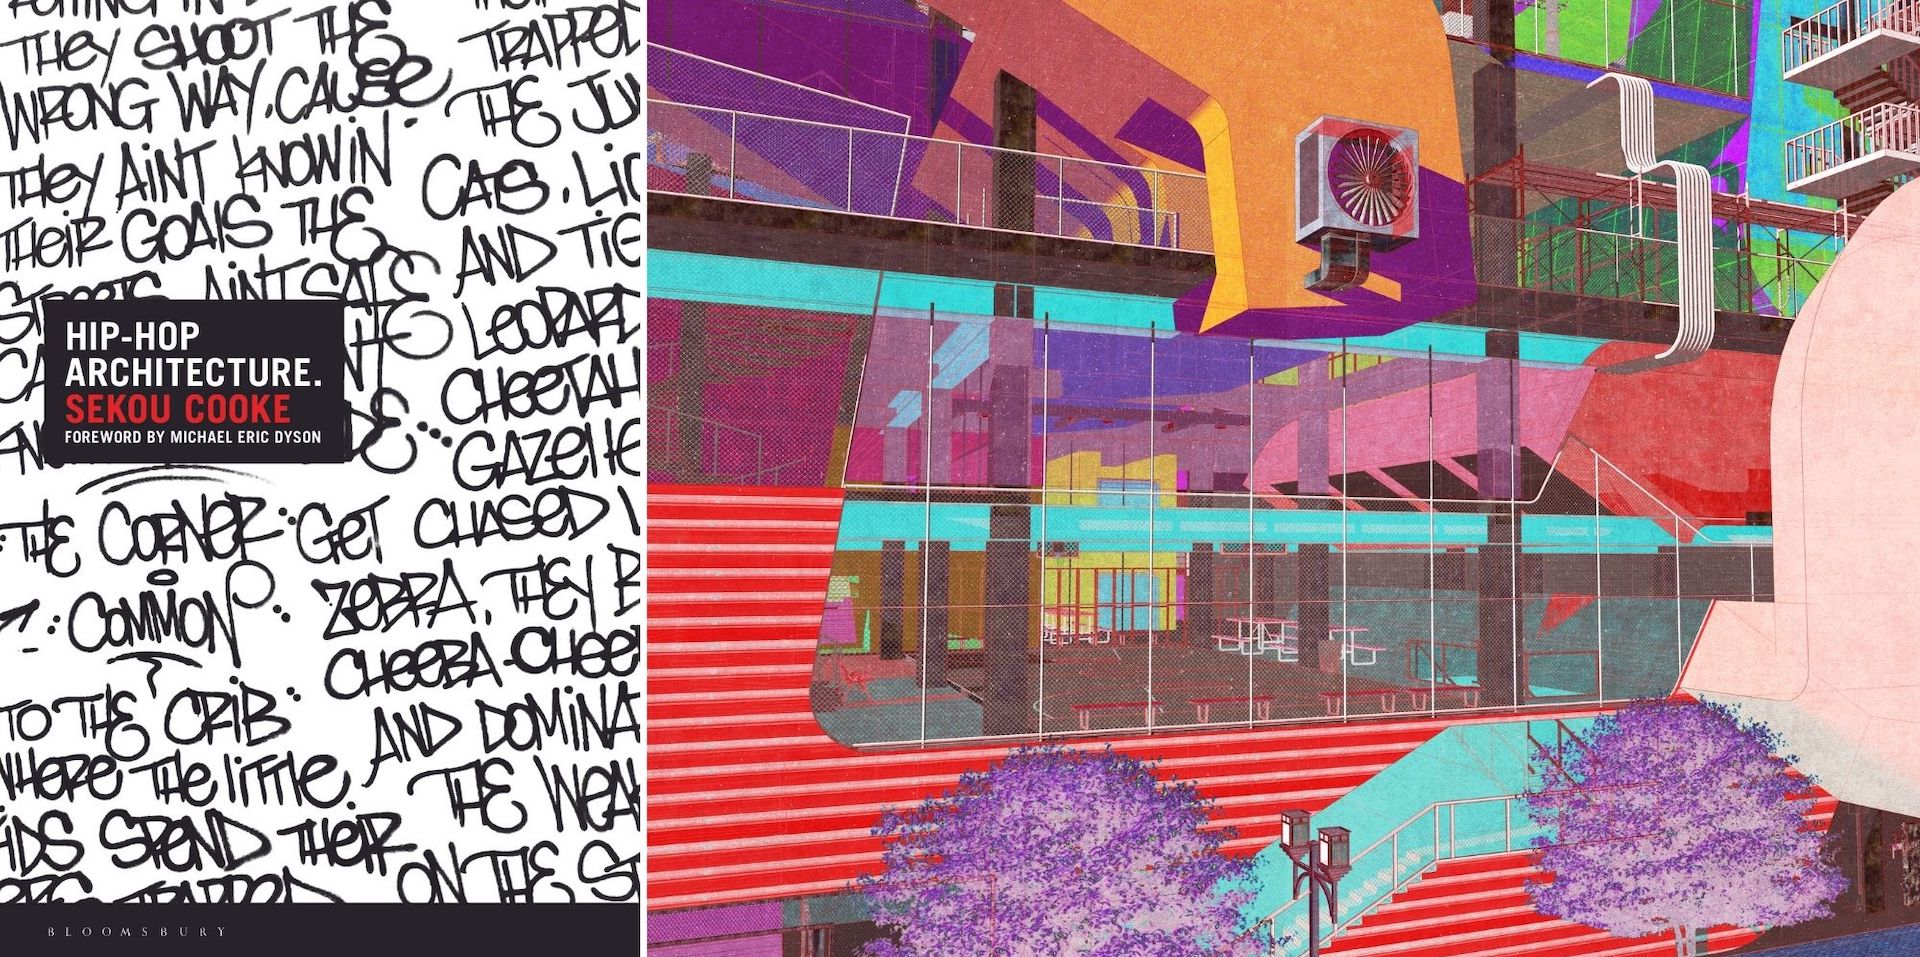 Hip-Hop Architecture by Sekou Cooke; At right: Appropriated Tekniques_Zamora © Mauricio D. Zamora. Photos courtesy of Bloomsbury